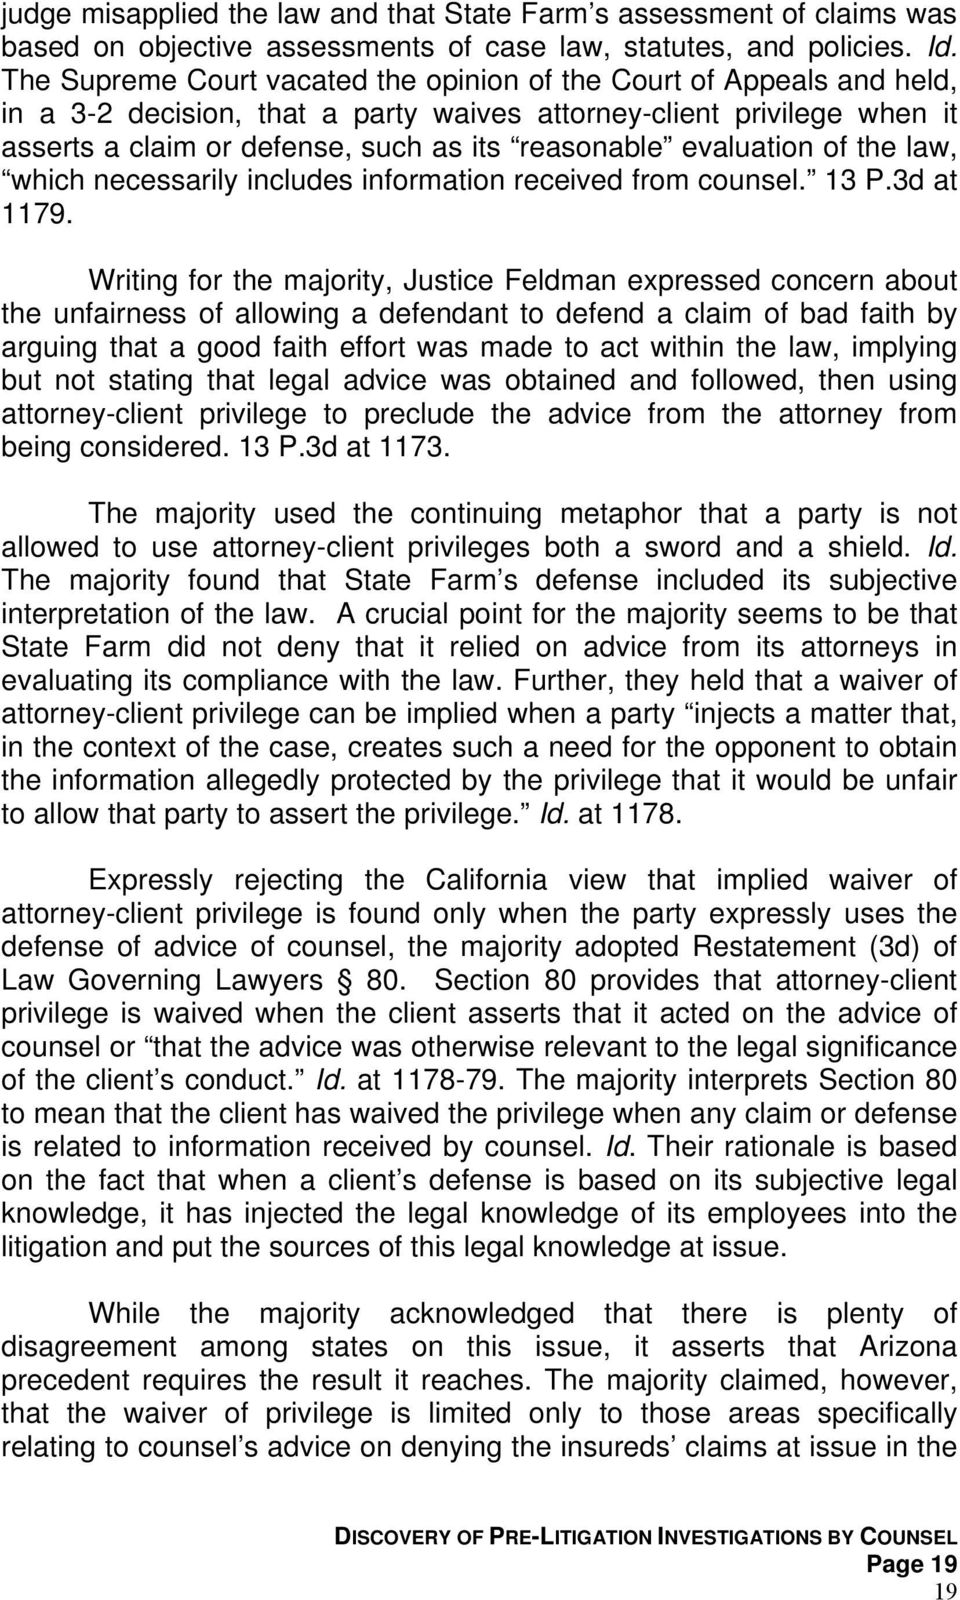 evaluation of the law, which necessarily includes information received from counsel. 13 P.3d at 1179.